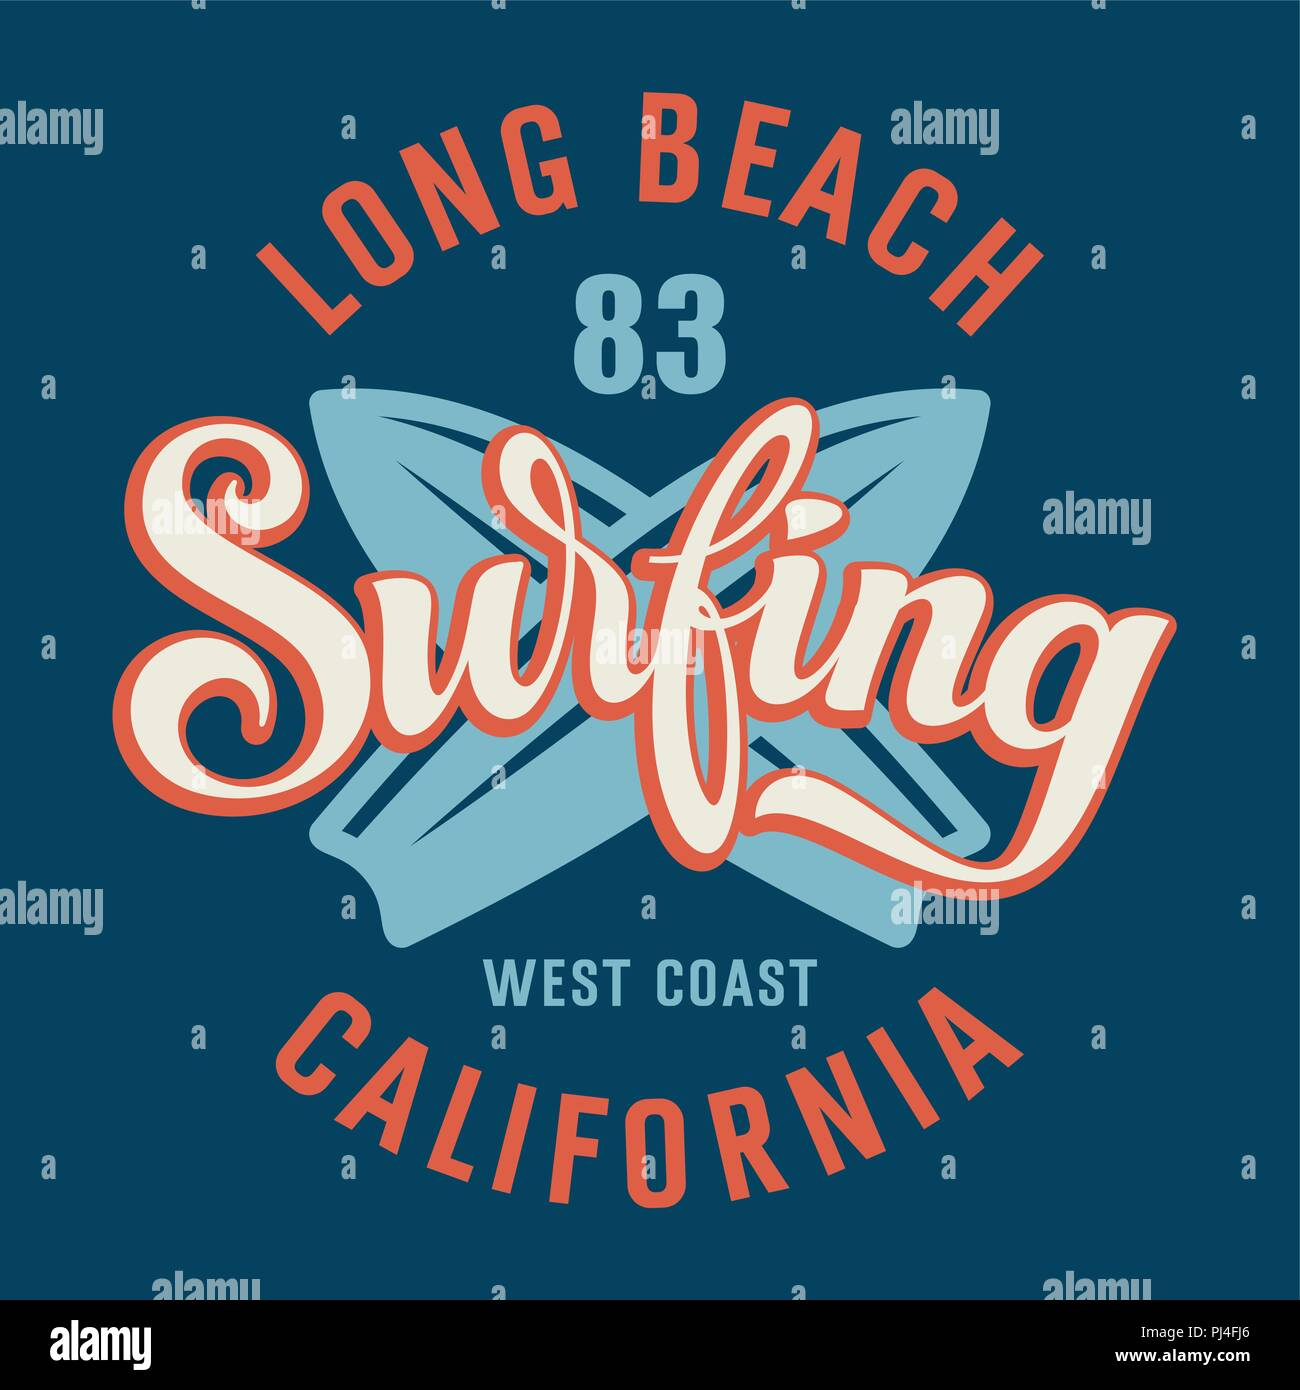 af49b9a0 Surfing artwork. California Long Beach design. Vector illustration in  vintage style for T-shirt print